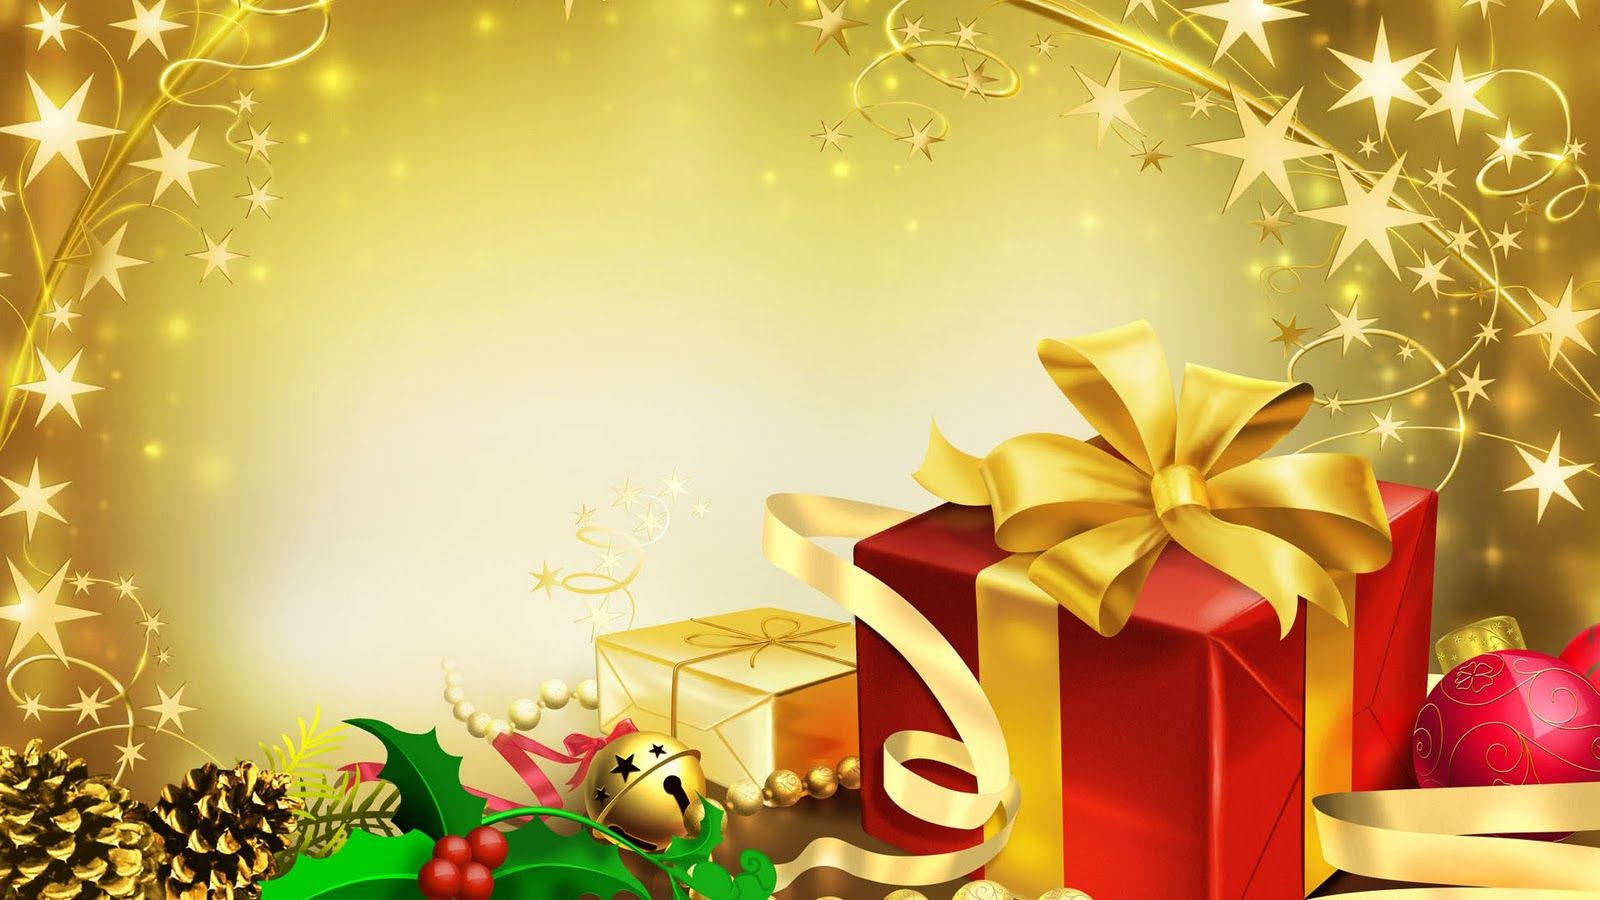 christmas backgrounds | Christmas Desktop Backgrounds | Free ...